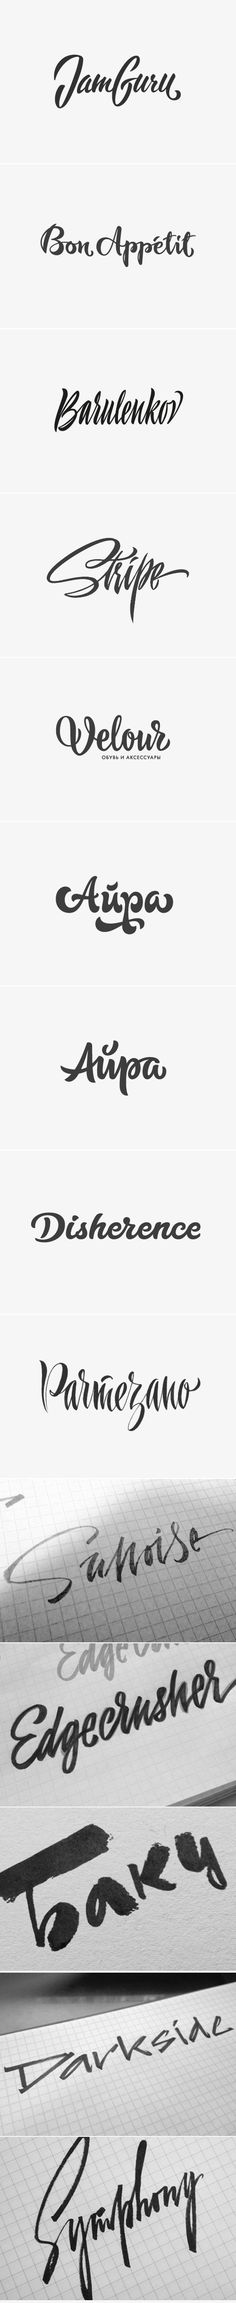 good typography - Tattoo fonts